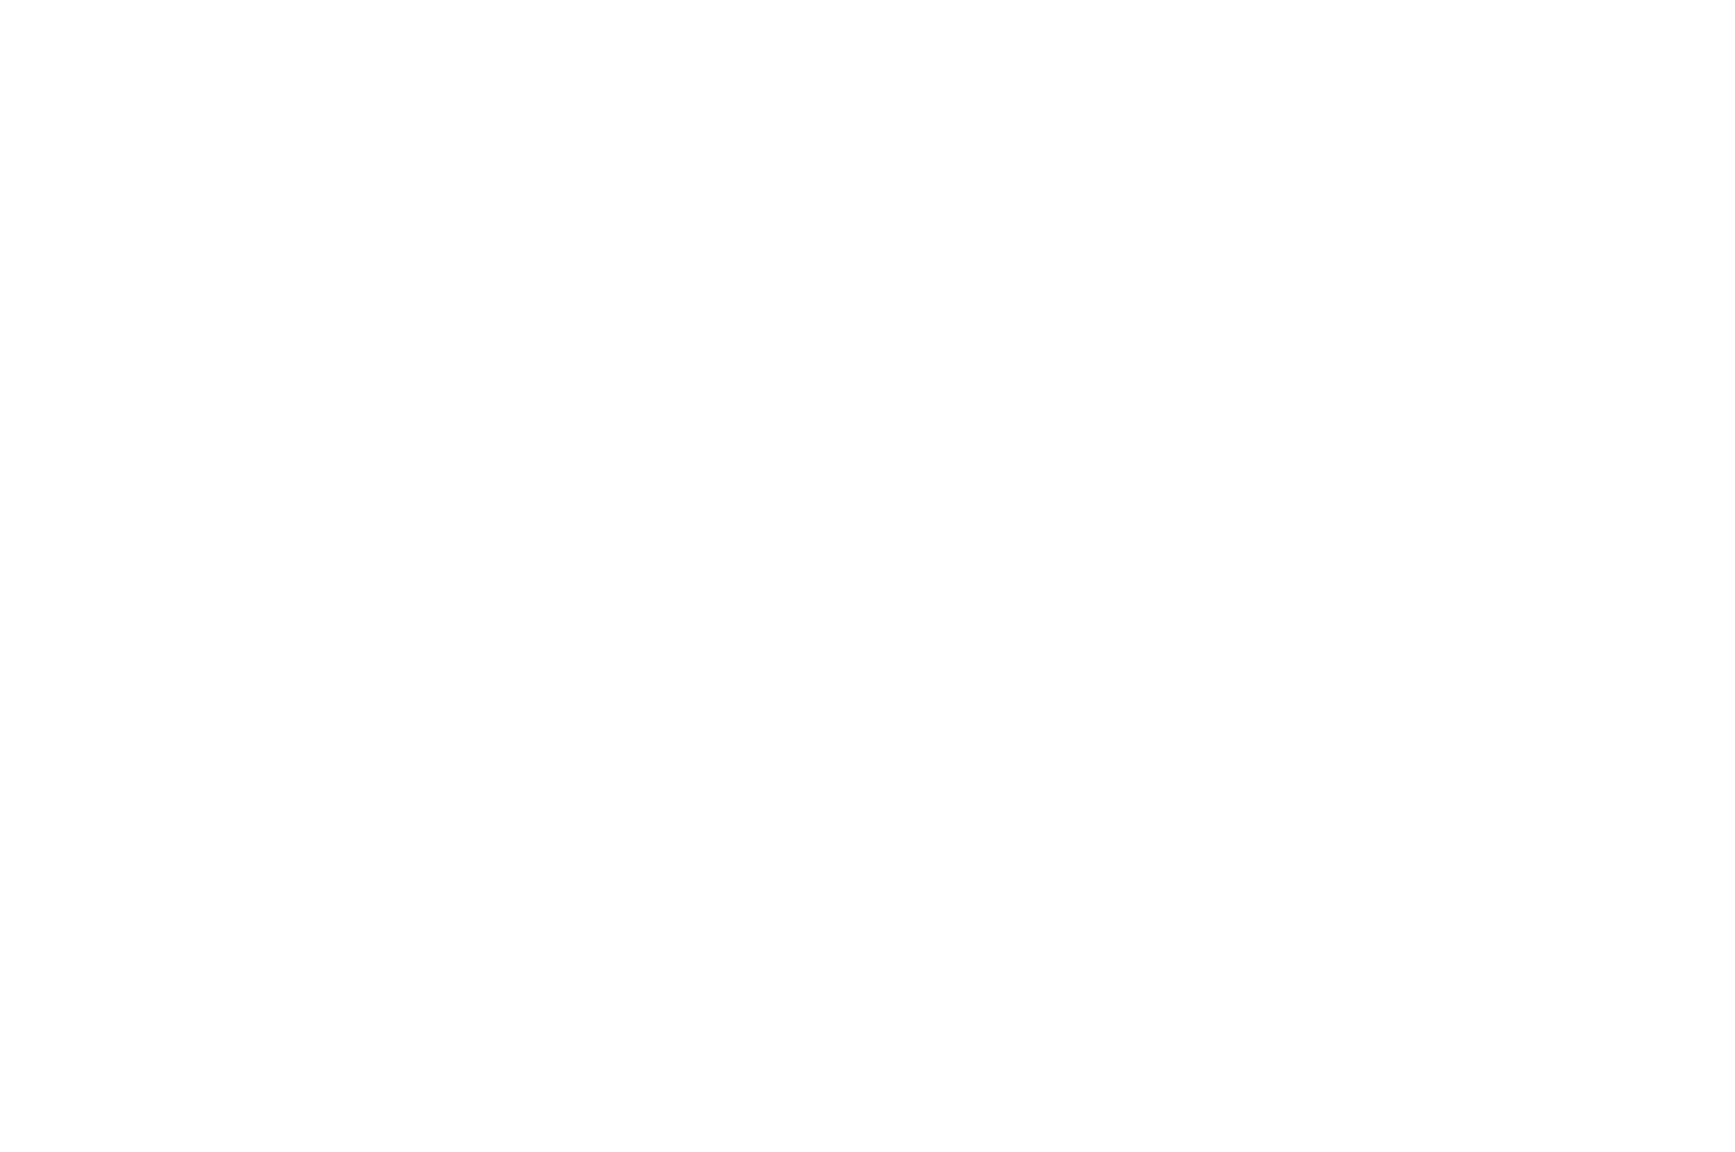 OFFICIAL FESTIVAL SELECTIONS